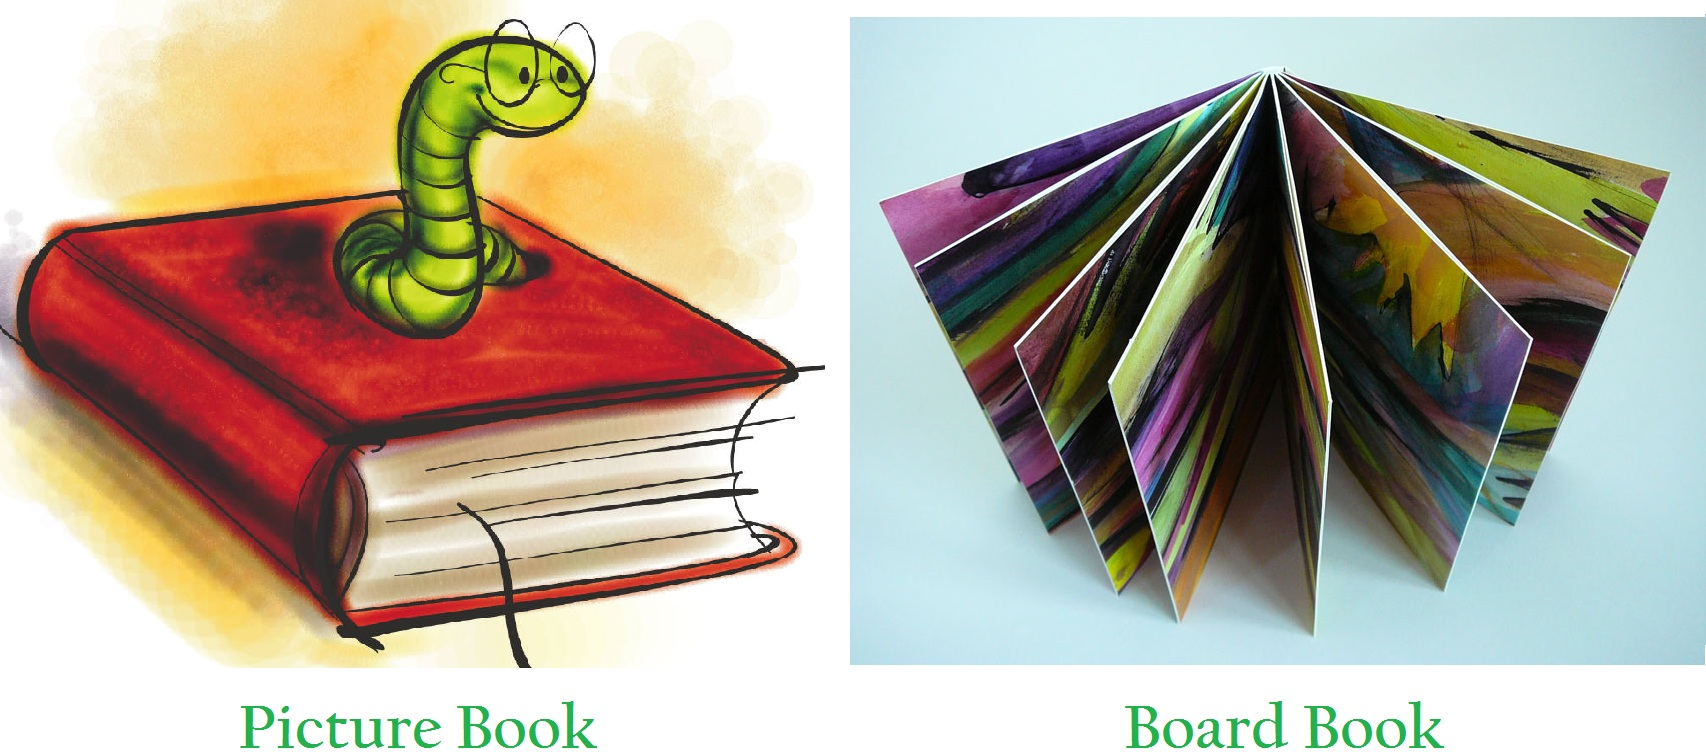 Difference Between Board Books And Picture Books